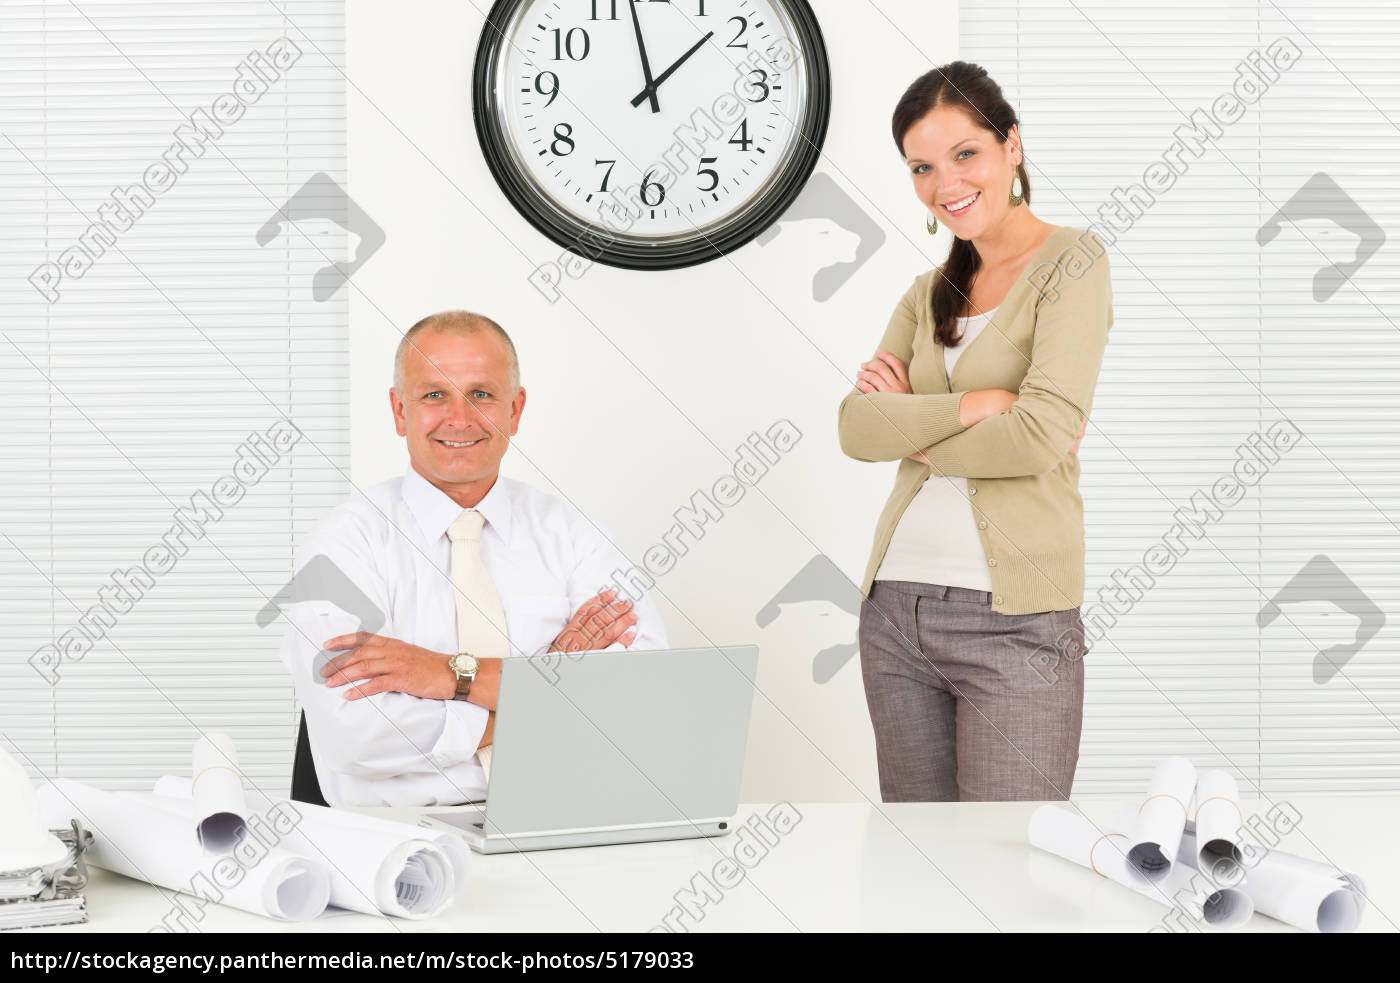 professional, architect, people, behind, office, table - 5179033